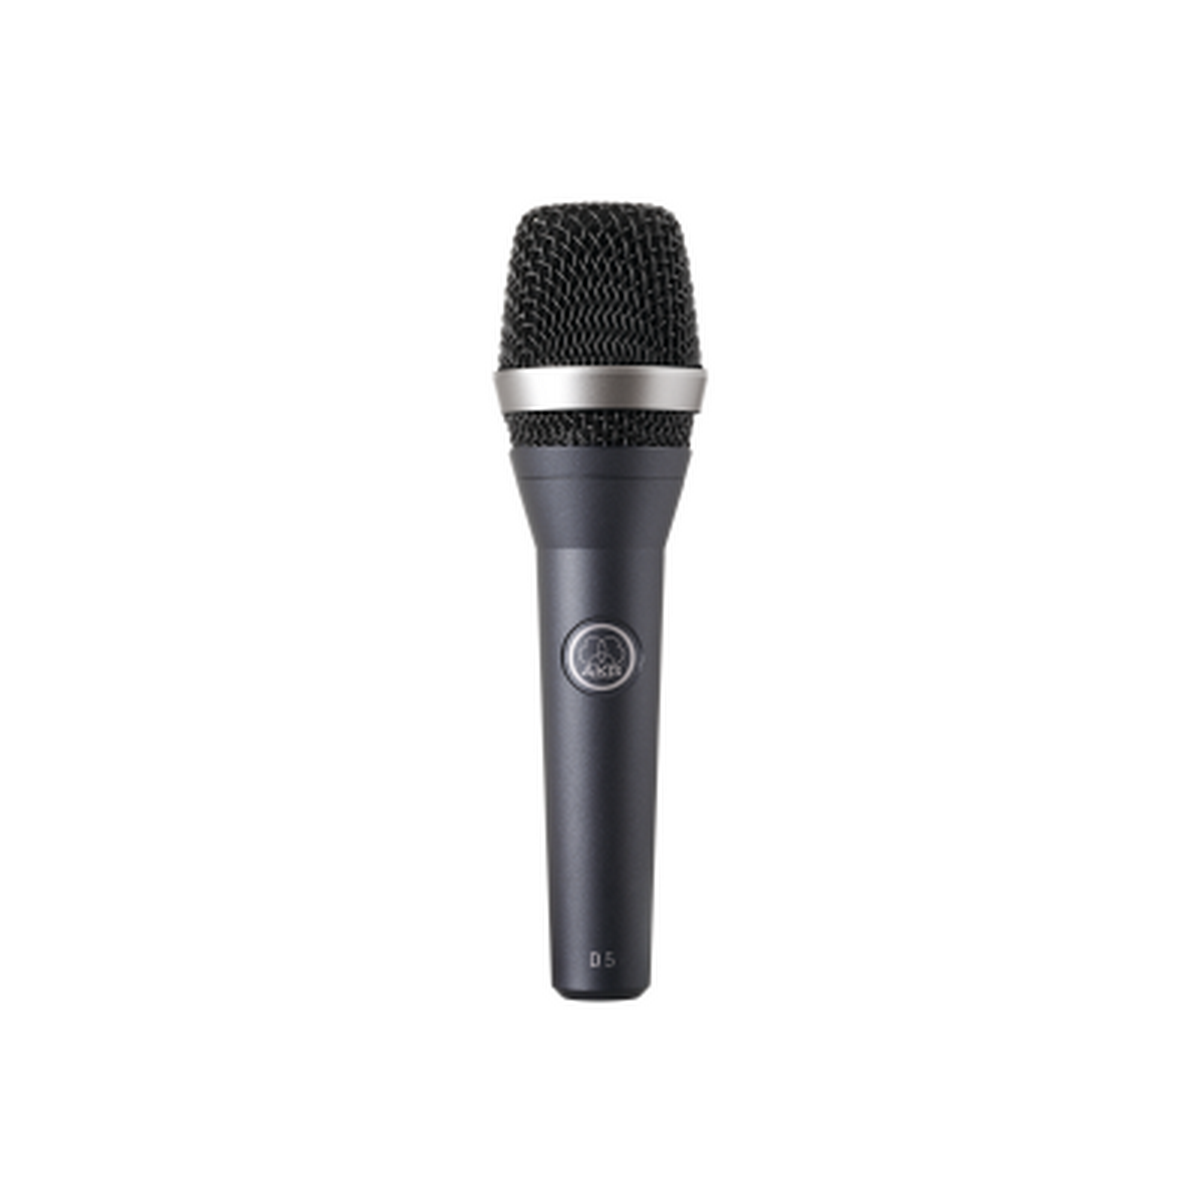 AKG D5 Professional dynamic mic for lead & backing vocals on stage